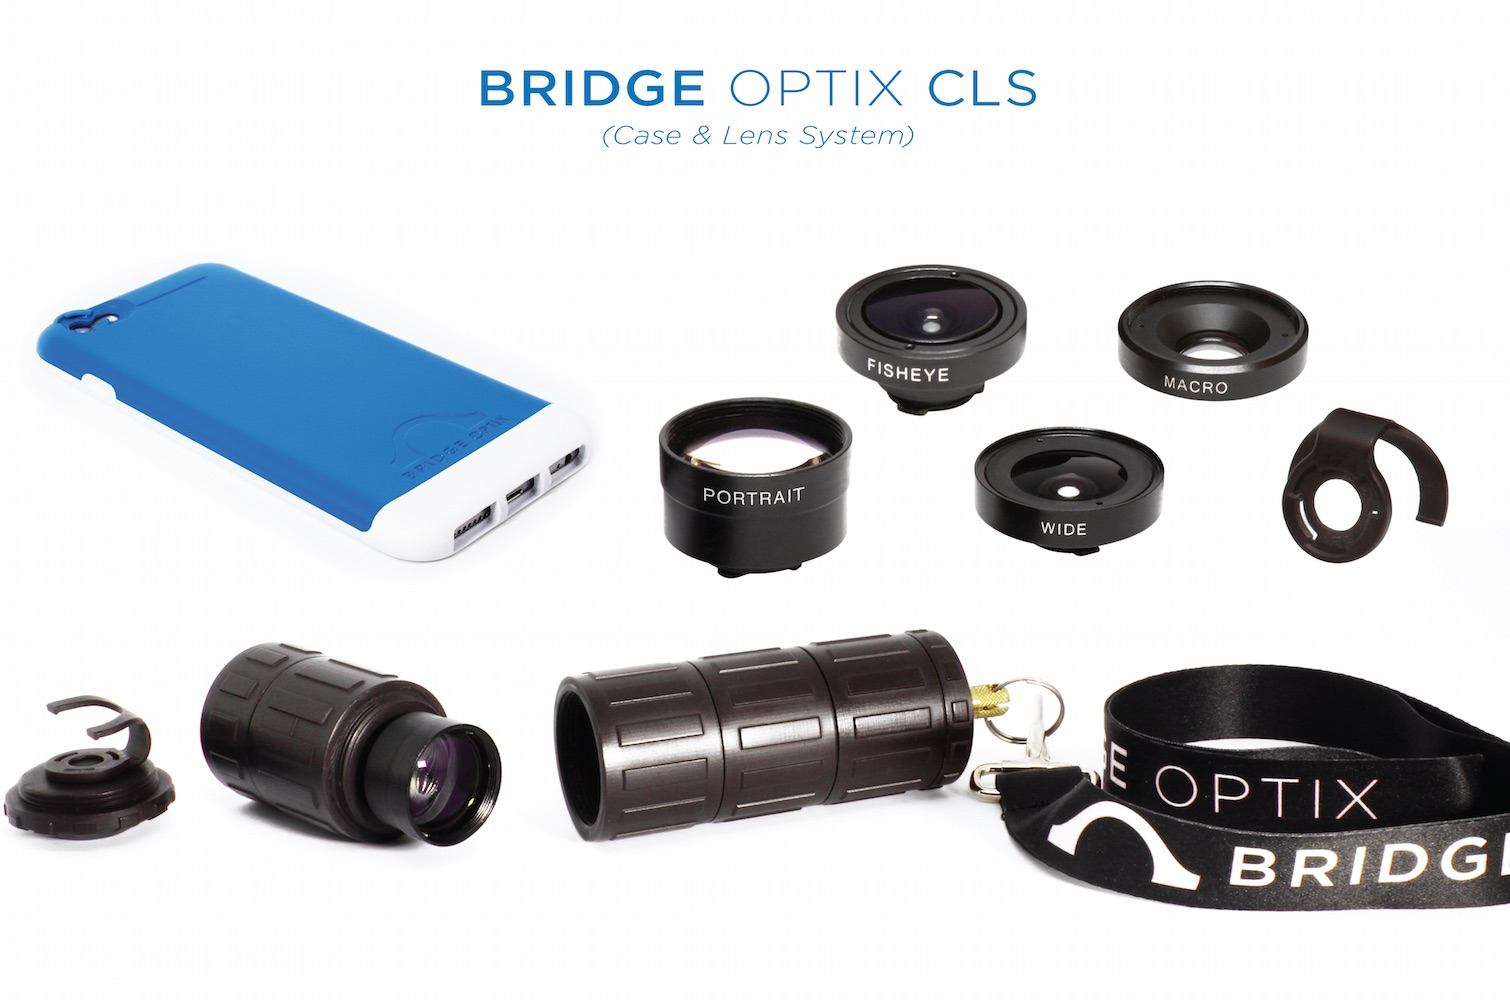 Bridge Optix Case and Lens System for iPhone 6 & 6 Plus